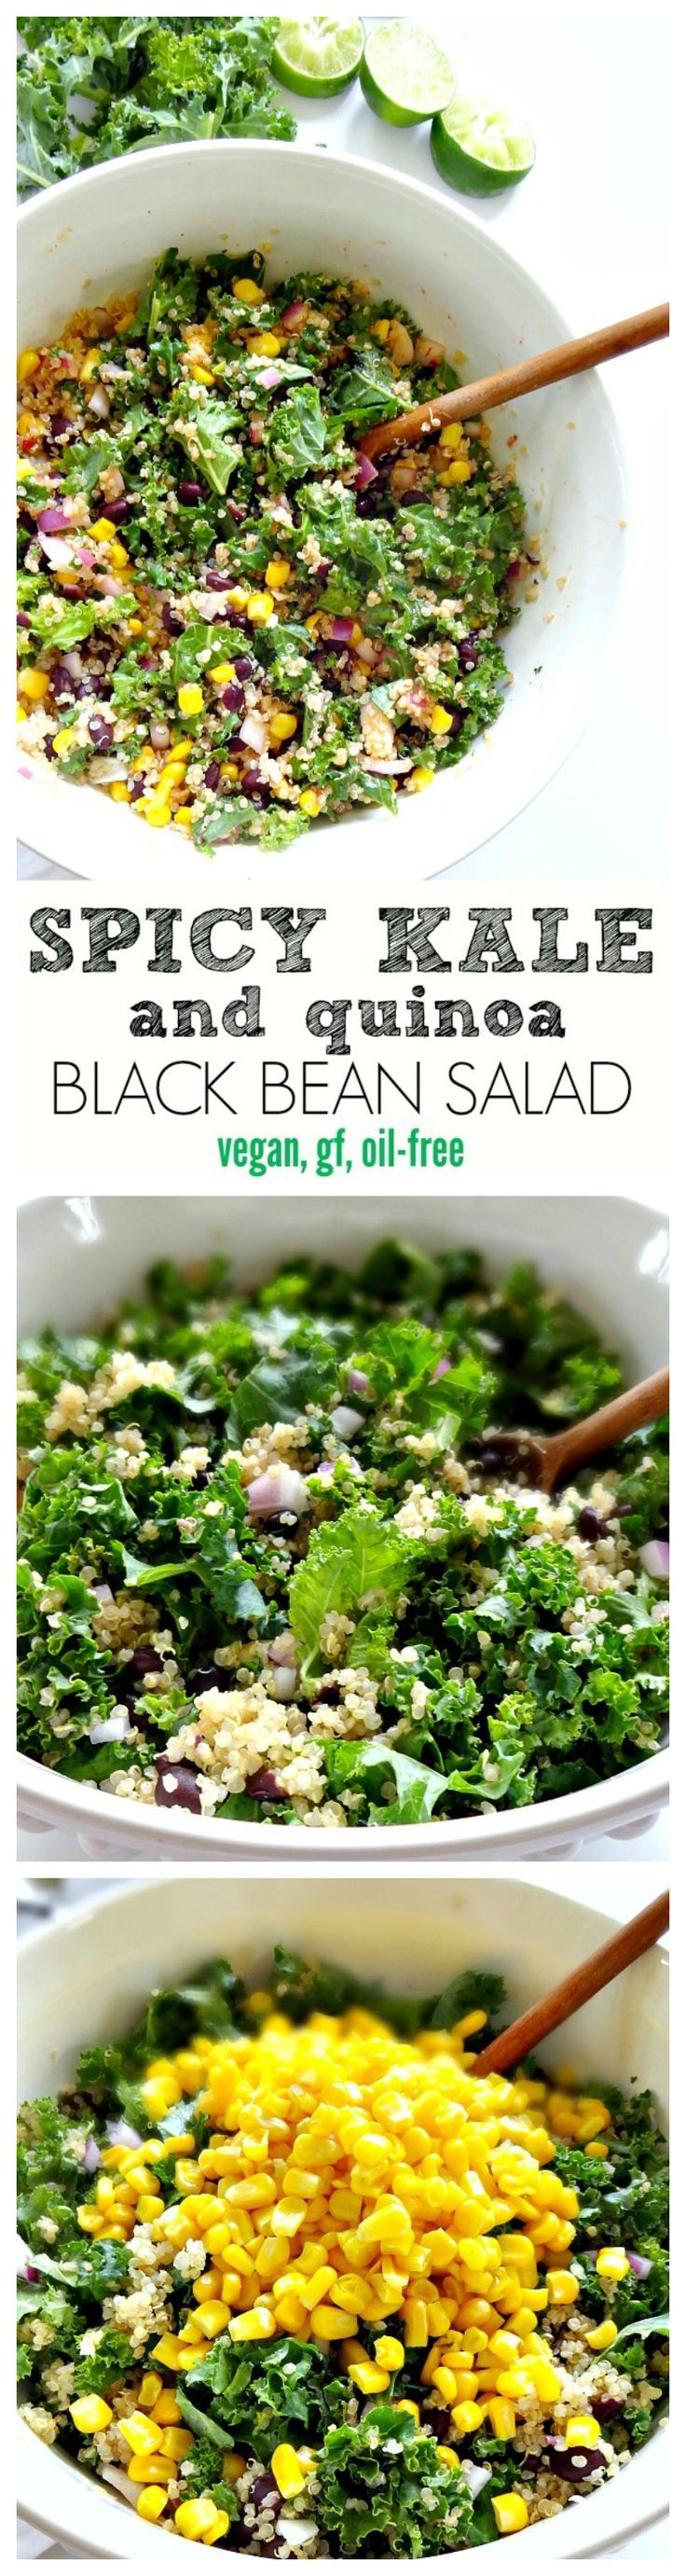 Spicy Kale and Quinoa Black Bean Salad